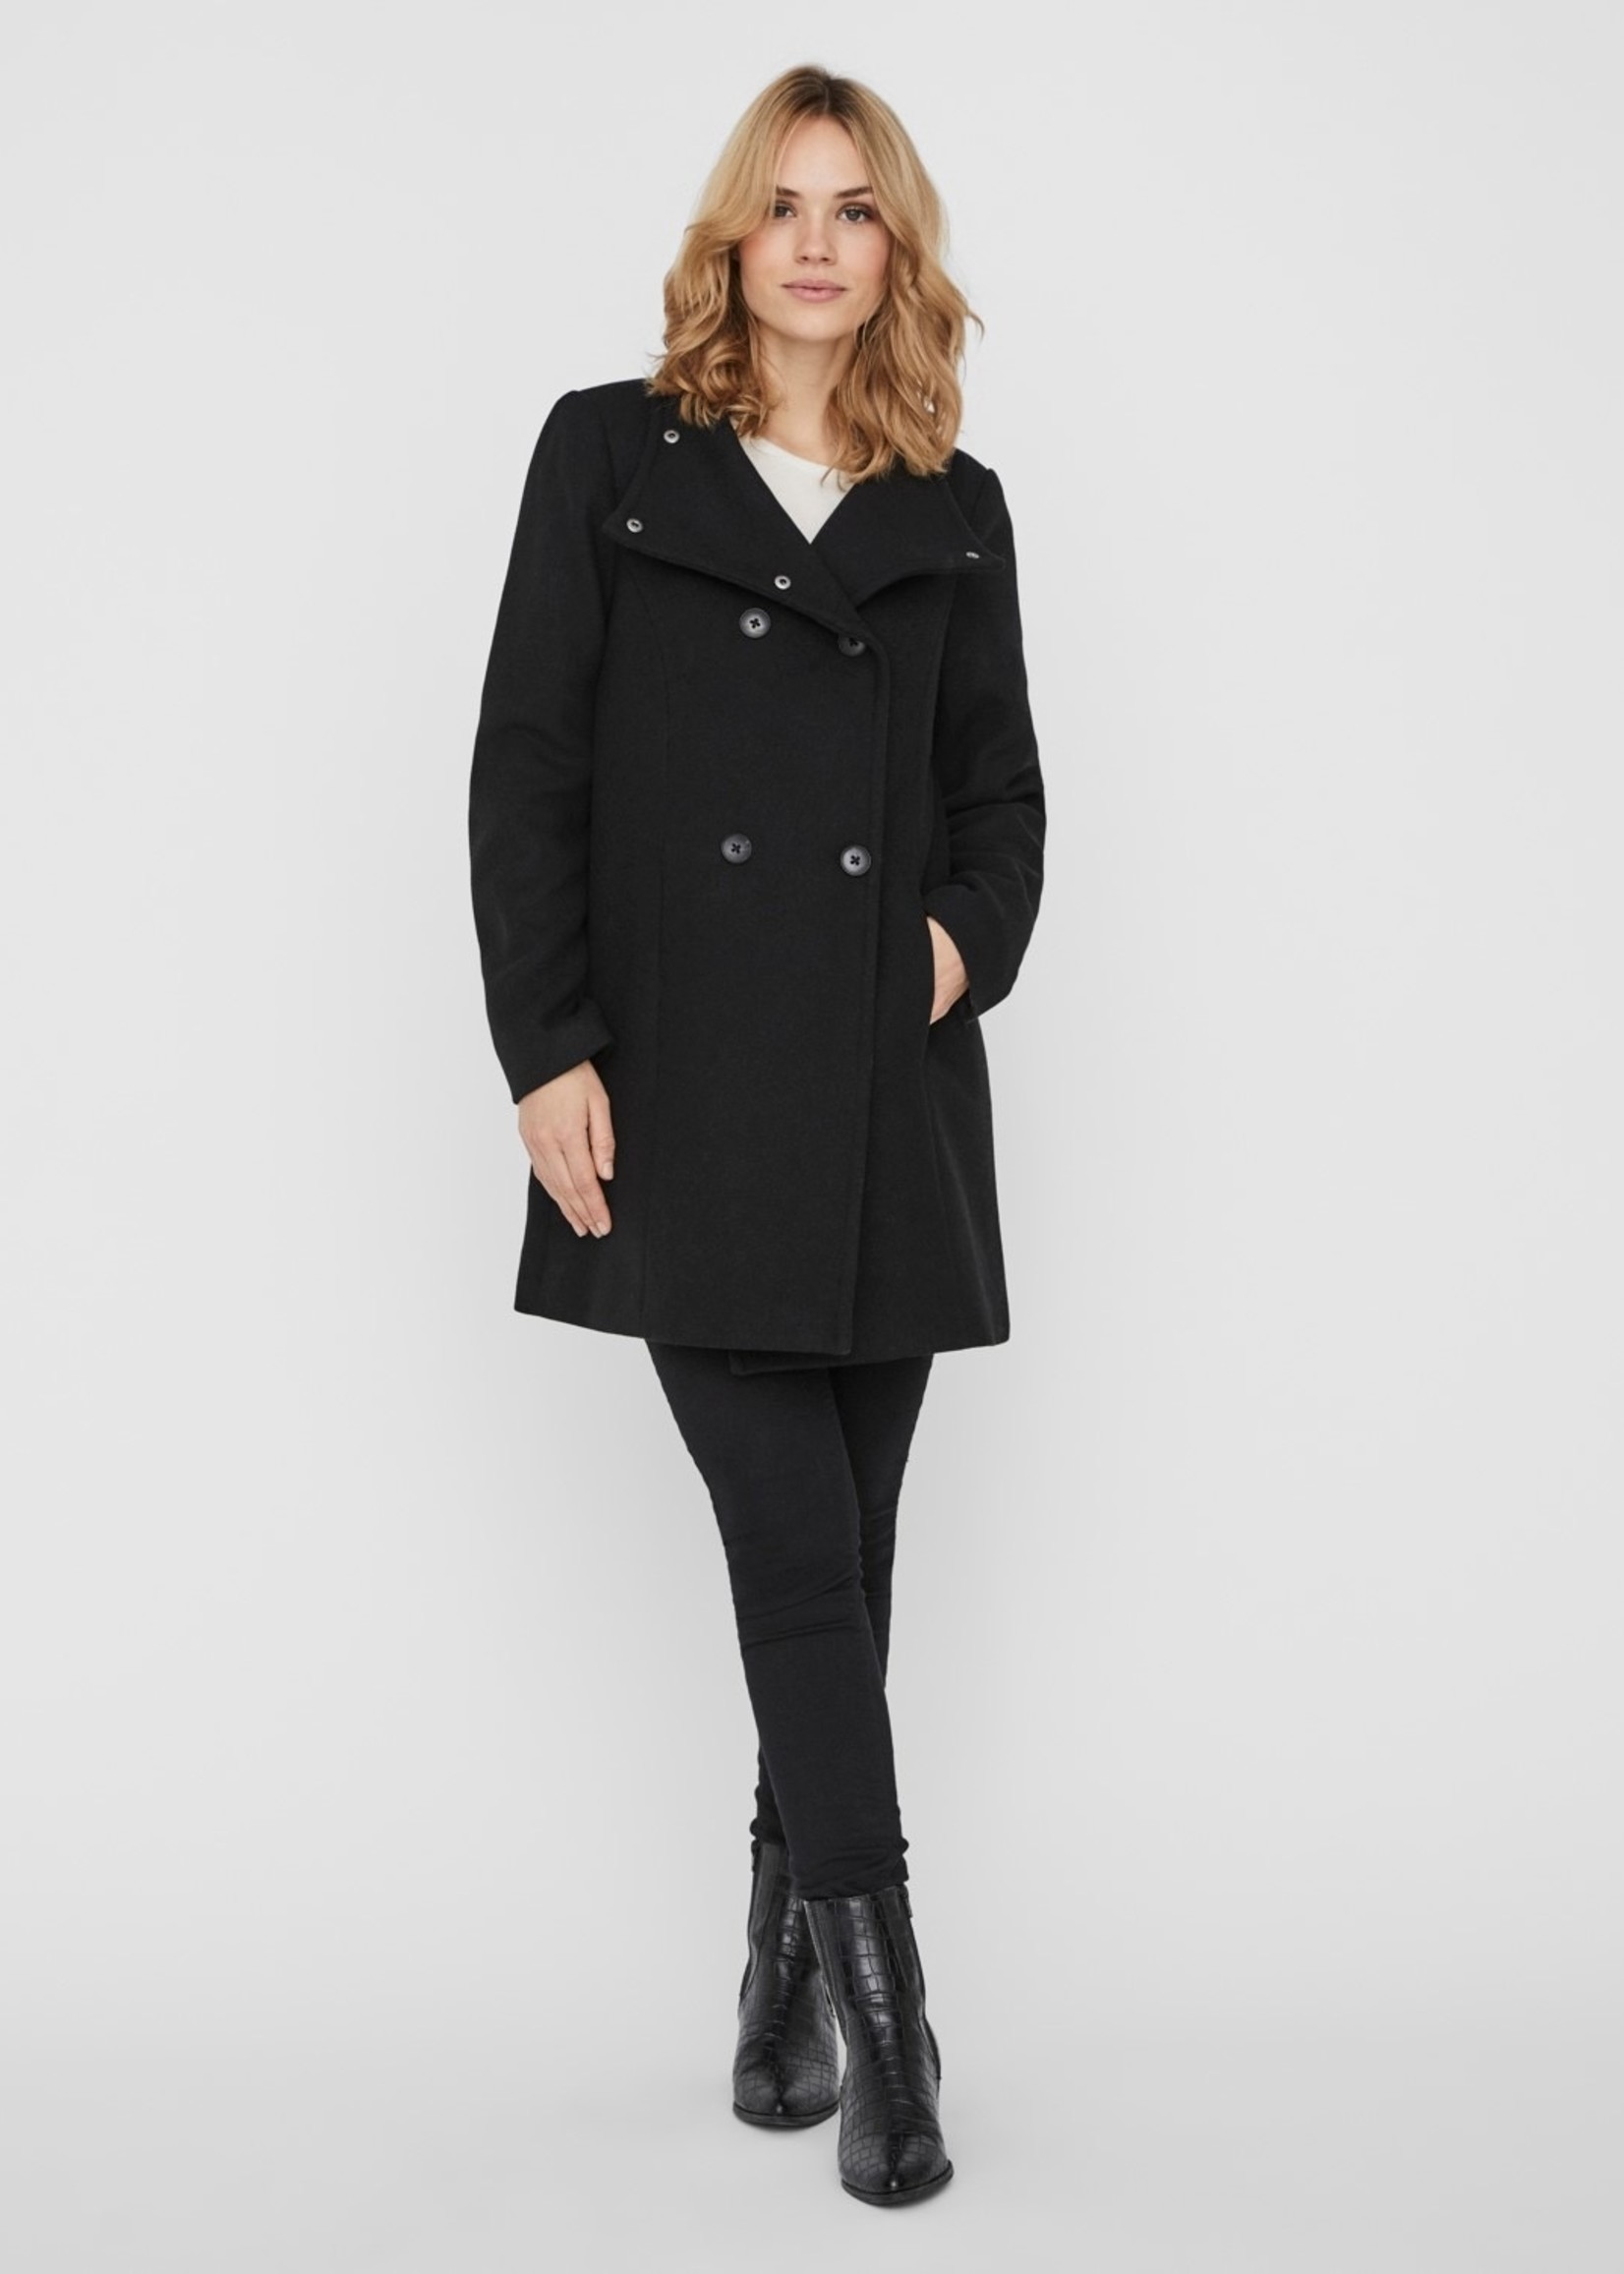 VERA MODA The Julia Peacoat